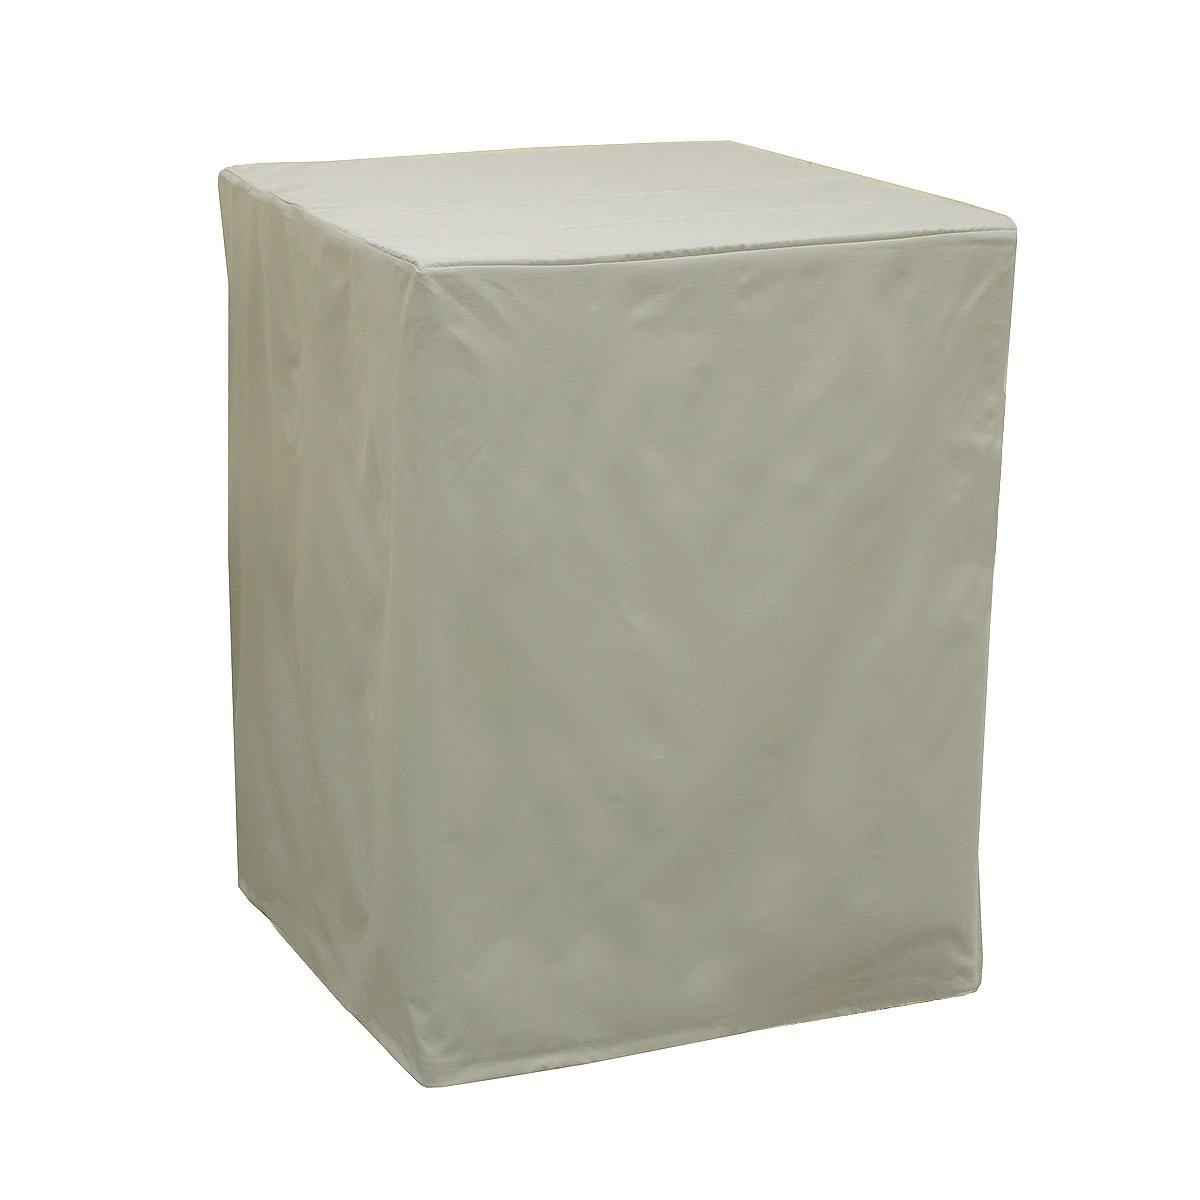 Dial Manufacturing Evaporative Cooler Cover - Down Draft - 28''w 28''d 29''h by Dial Manufacturing